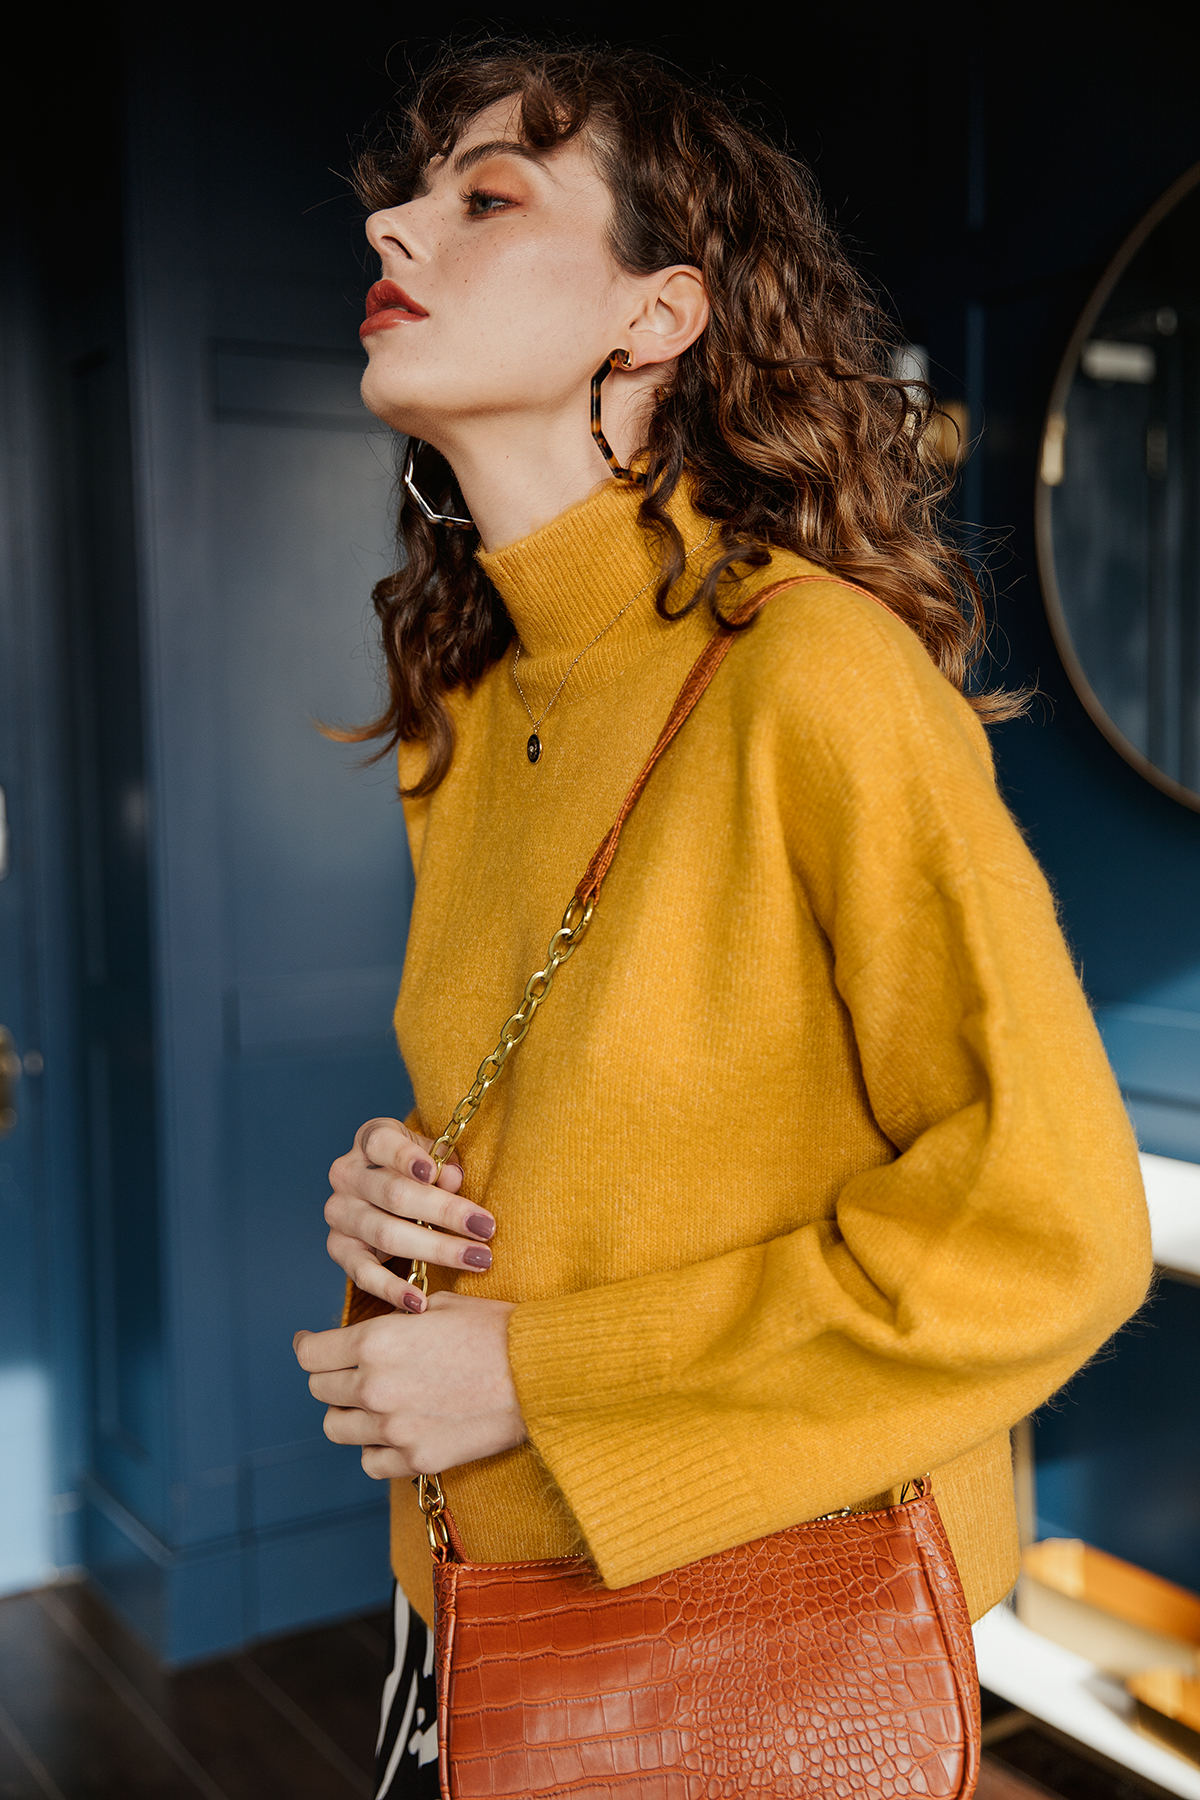 Sugar + Style fashion lookbook and e-com AW 2019. Model Alexandra in a yellow jumper. Shot by London based fashion photographer Ailera Stone